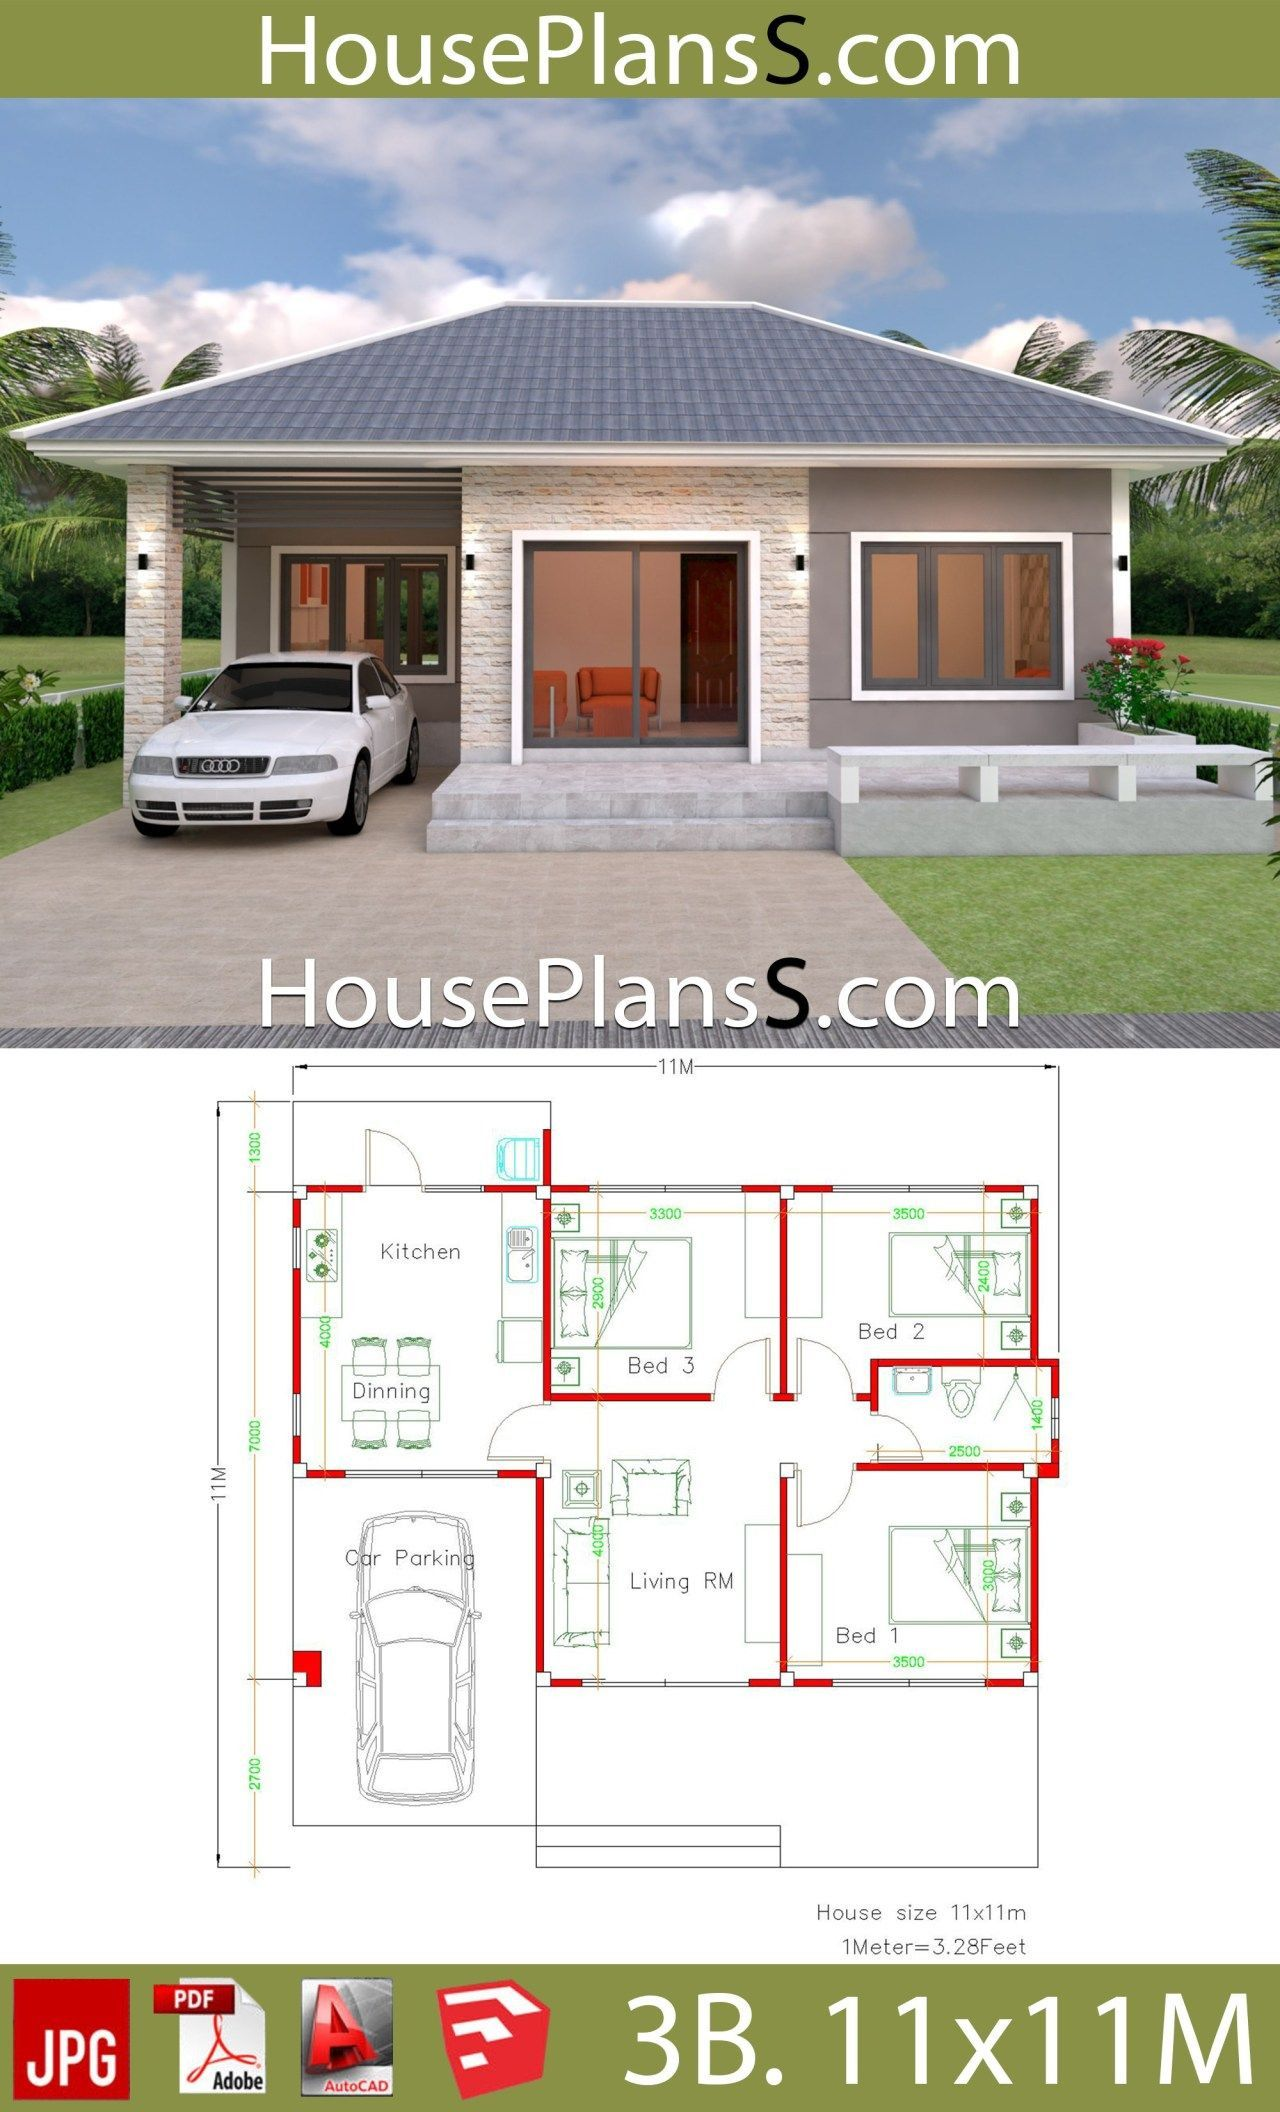 Simple Building Design Pictures 2020 Small House Design Plans Small House Layout House Layouts